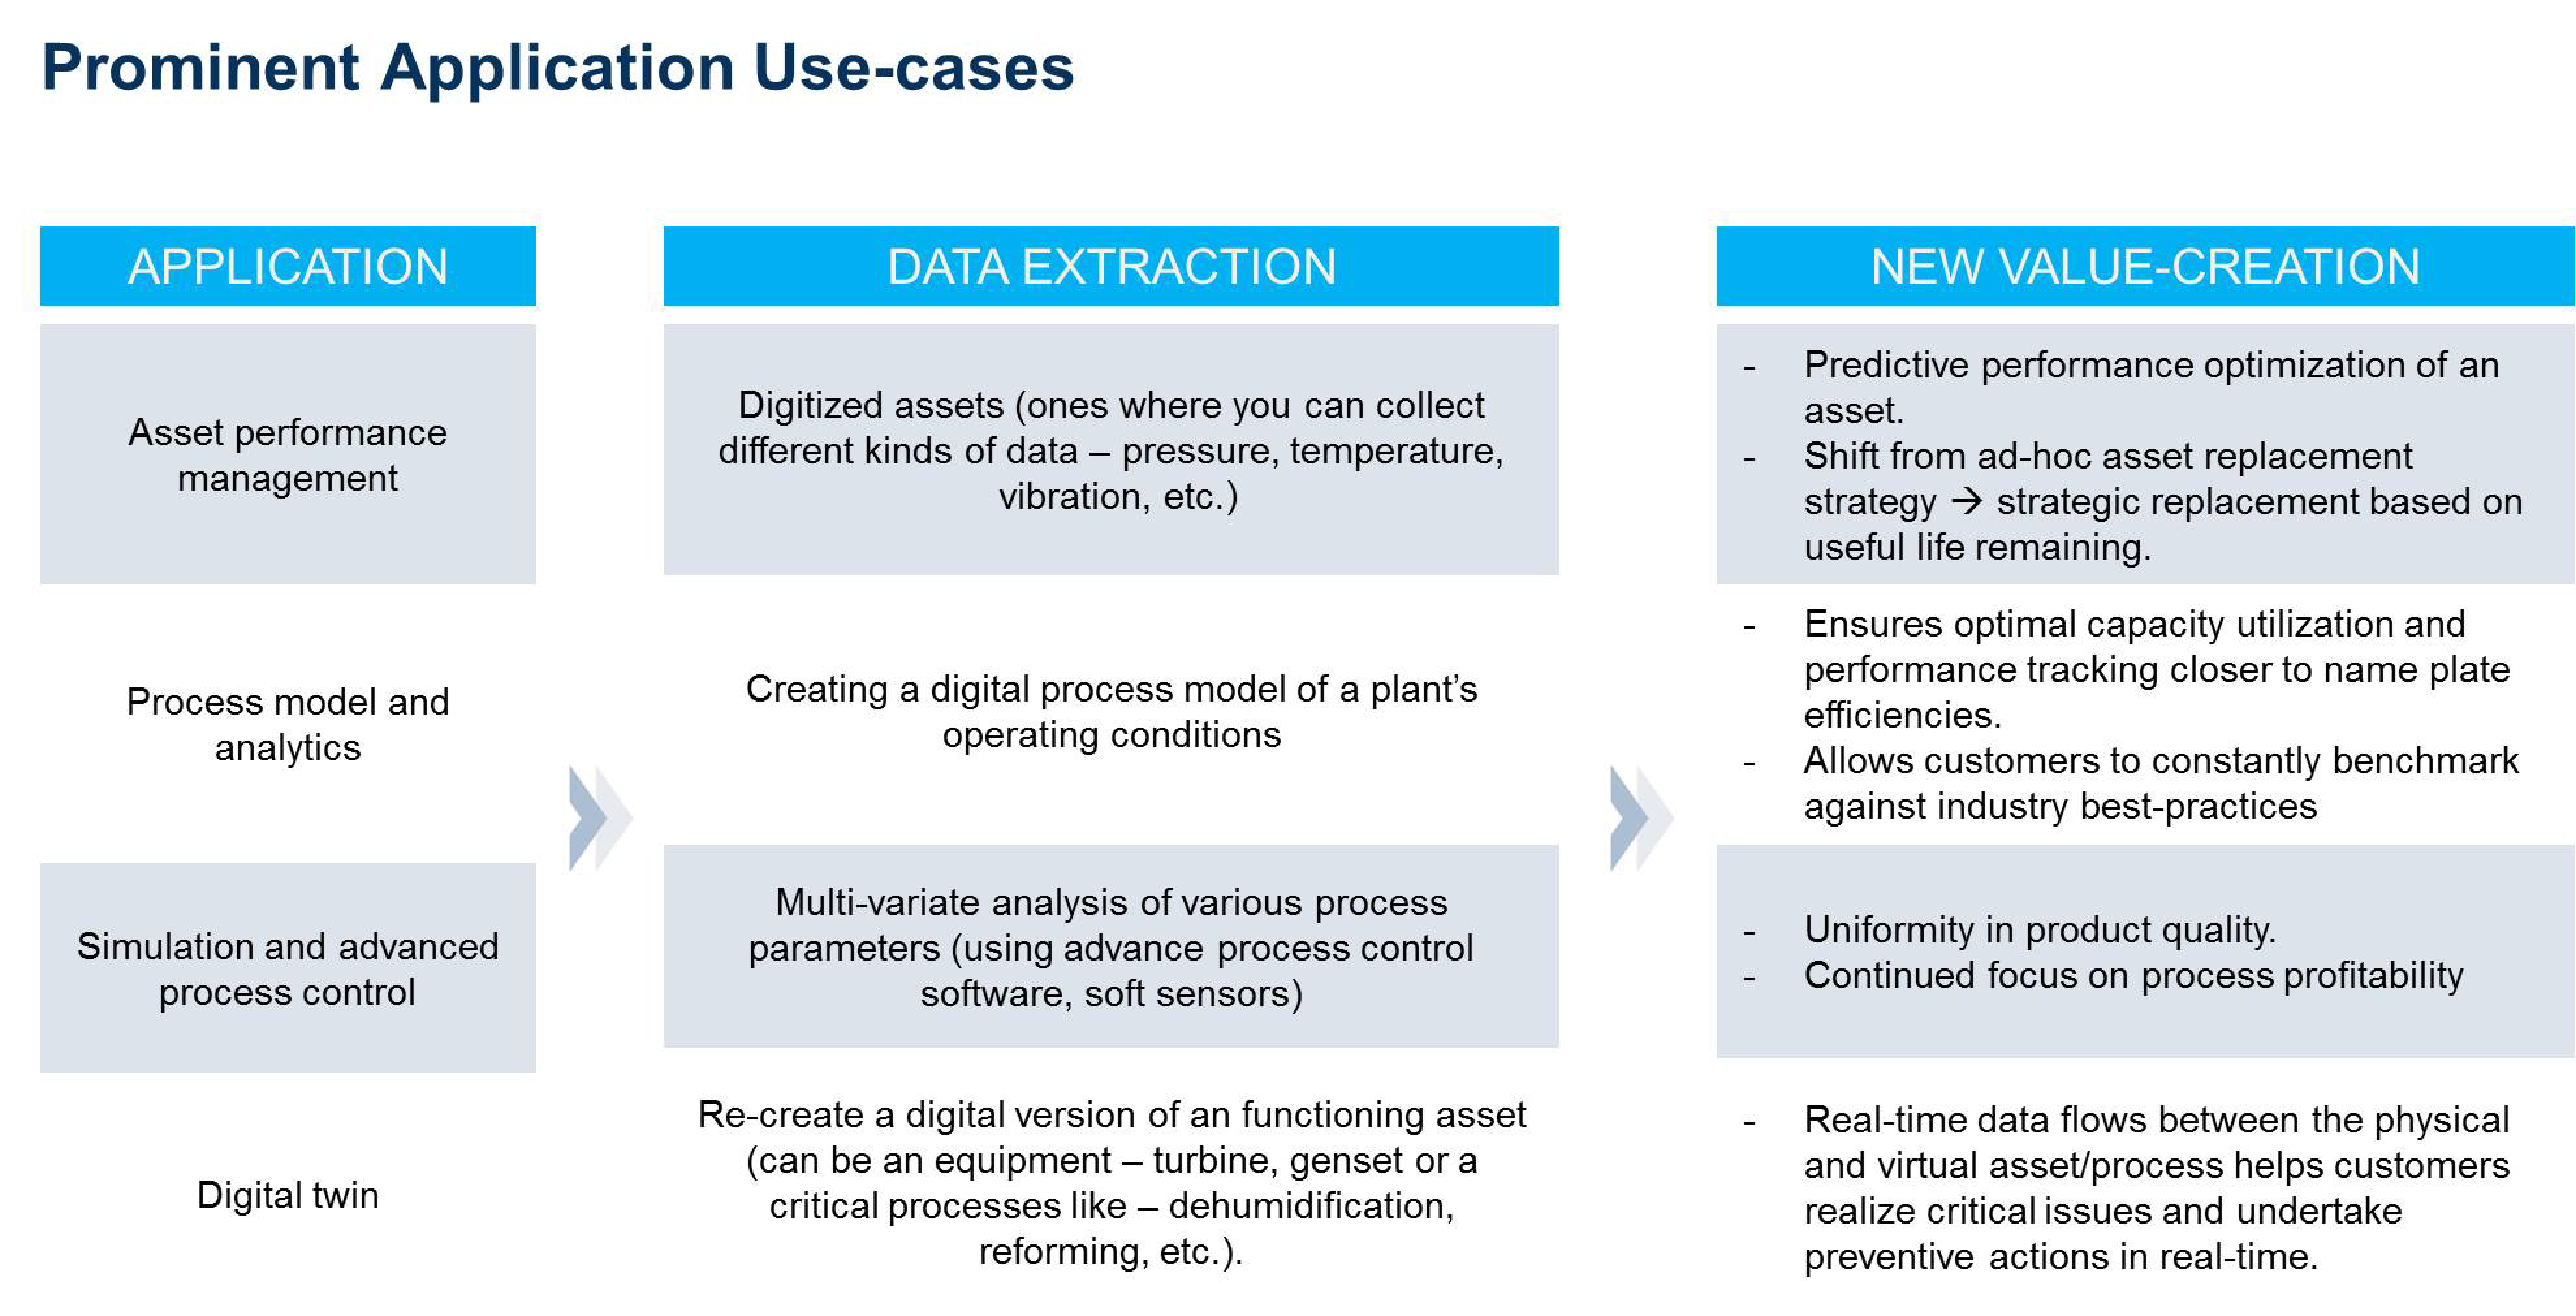 Data Extraction aids in New value creation sequence